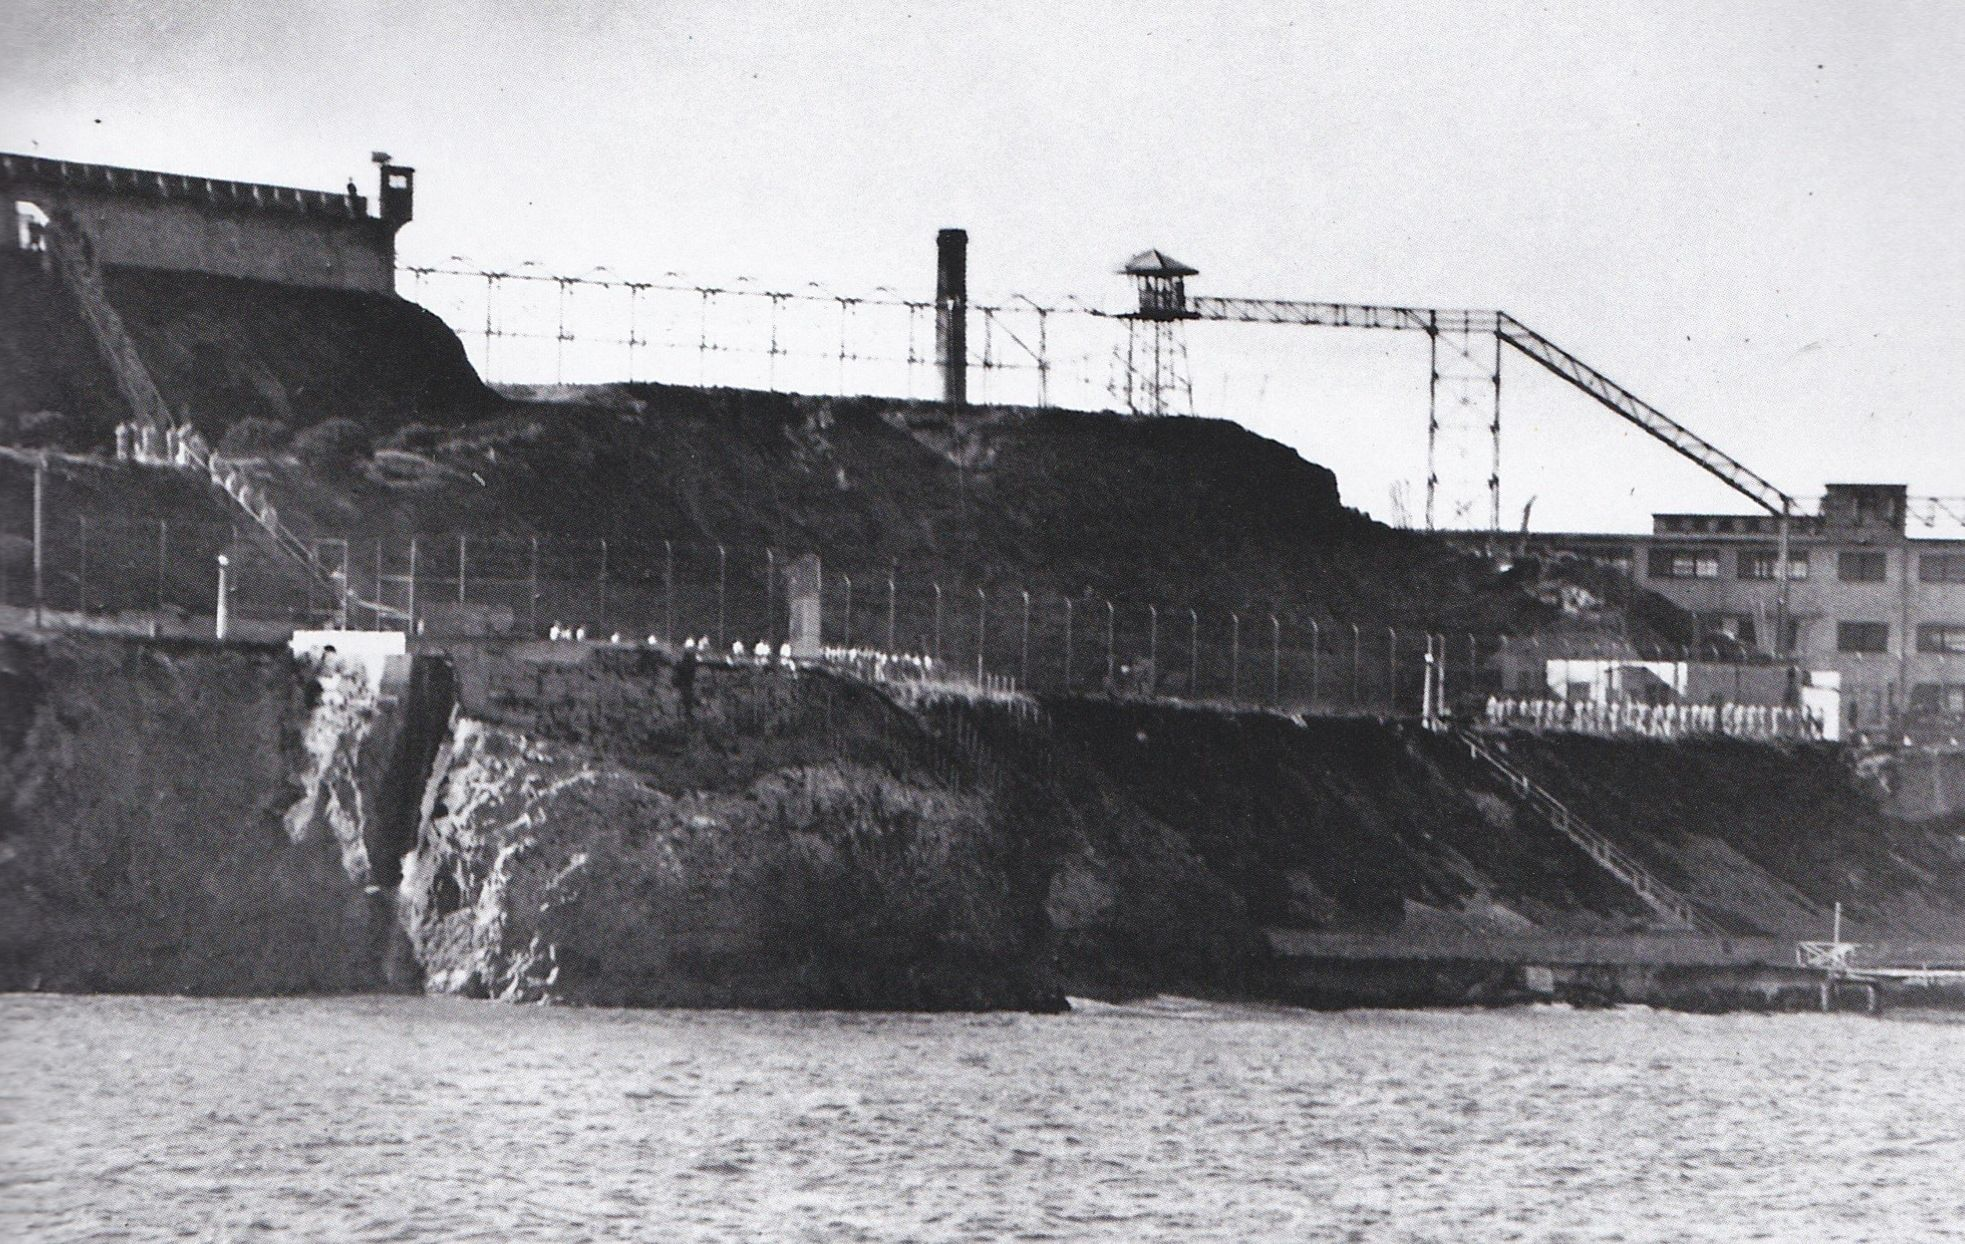 Among The Works Carried Out To Make Alcatraz Escape Proof Was The